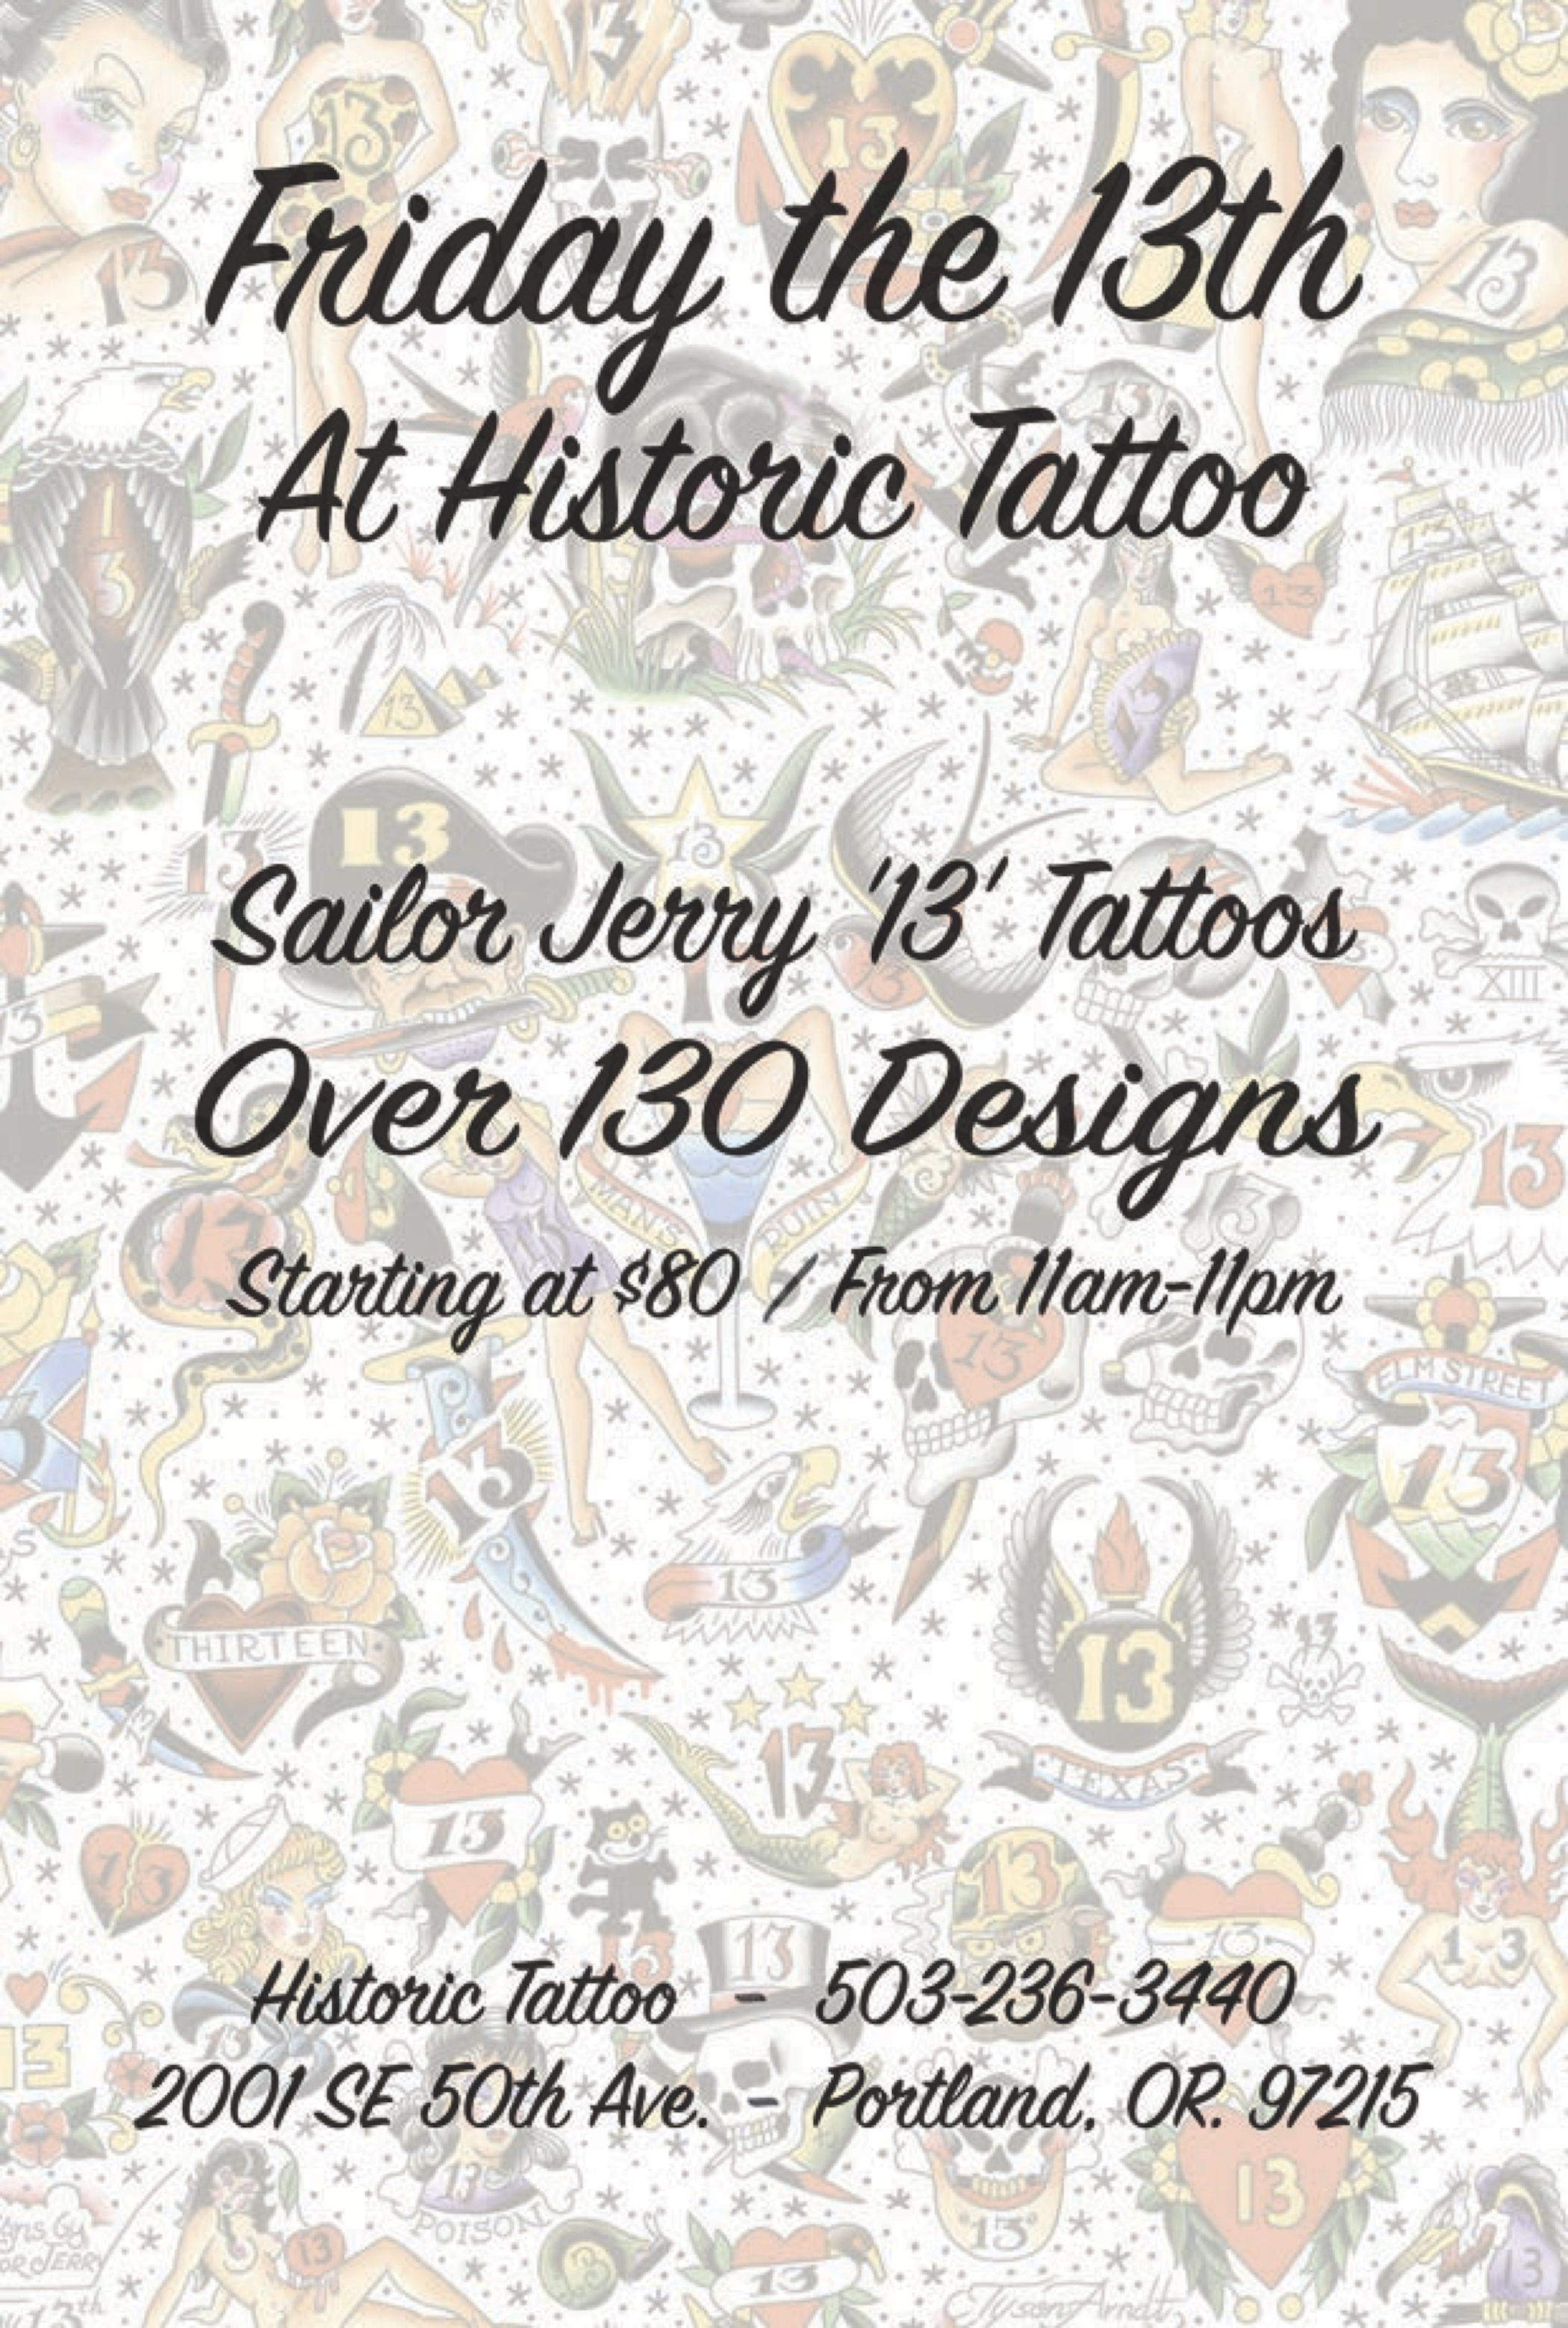 Ready historictattoo_flyer_mzc_2015_edit2-02